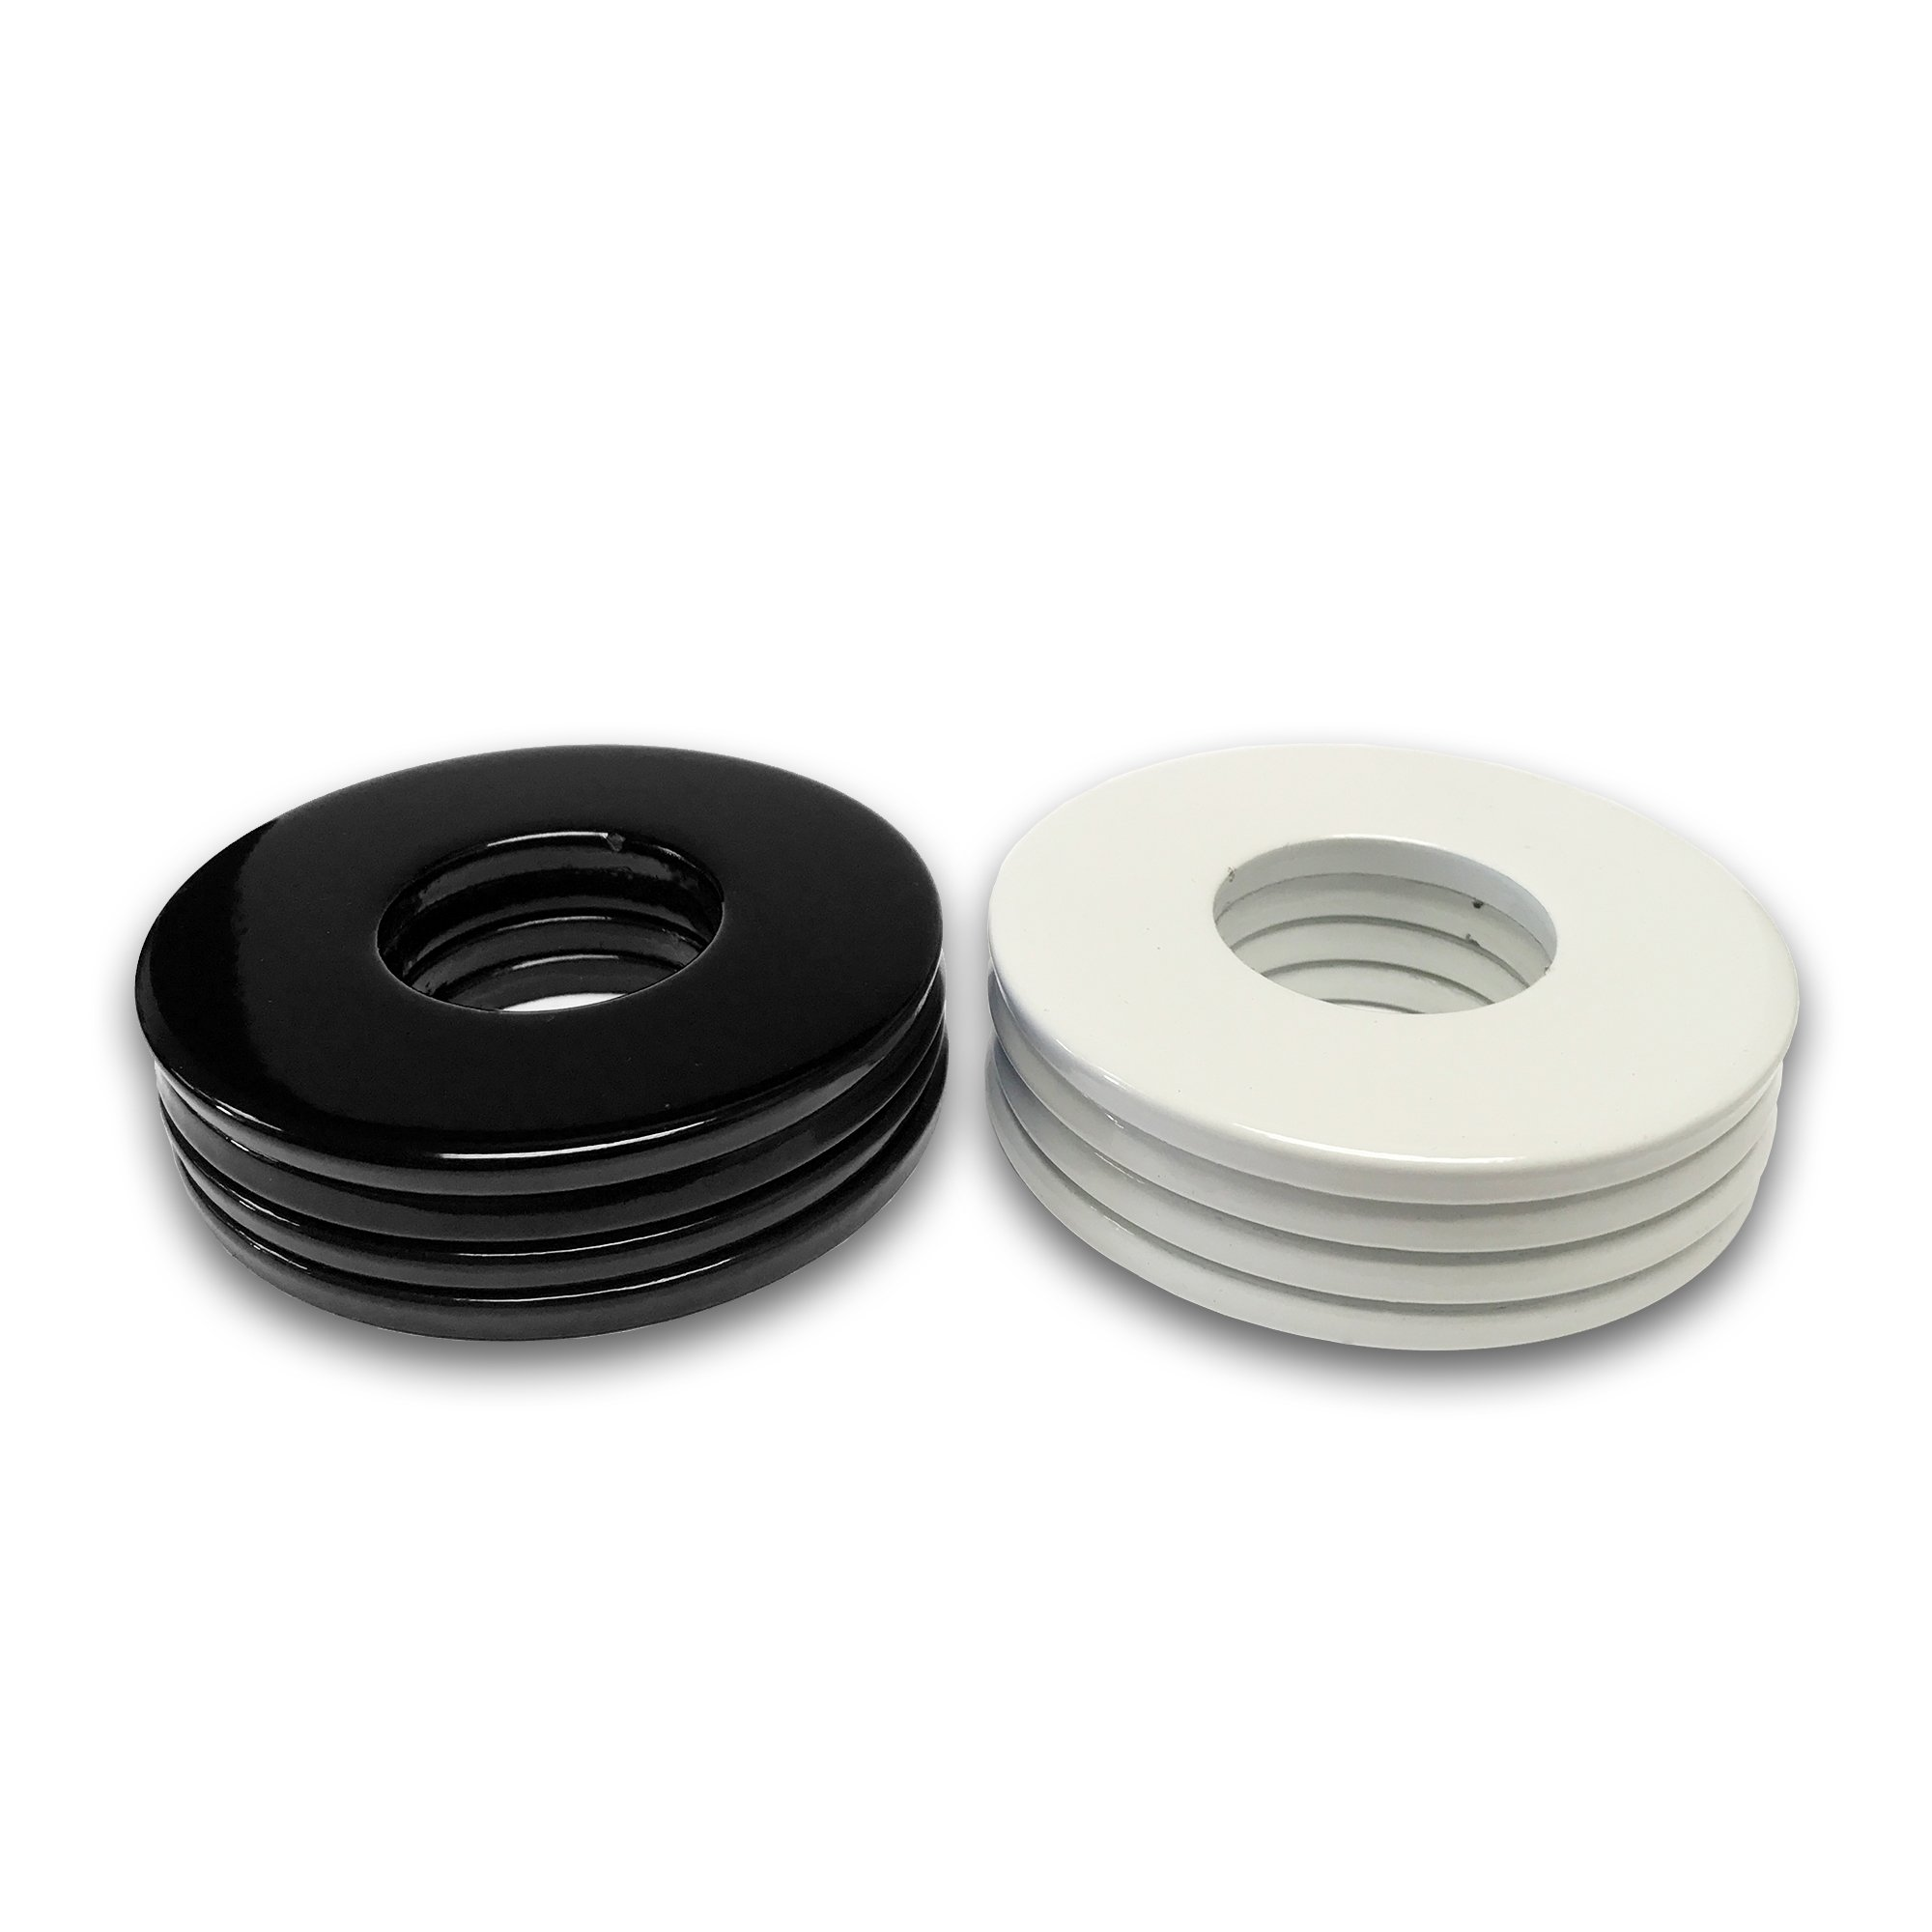 4 Black/4 White Powder Coated Replacement 2-1/2'' Washer Toss Pitching Game Washers - High Gloss! by Washer Toss Pros